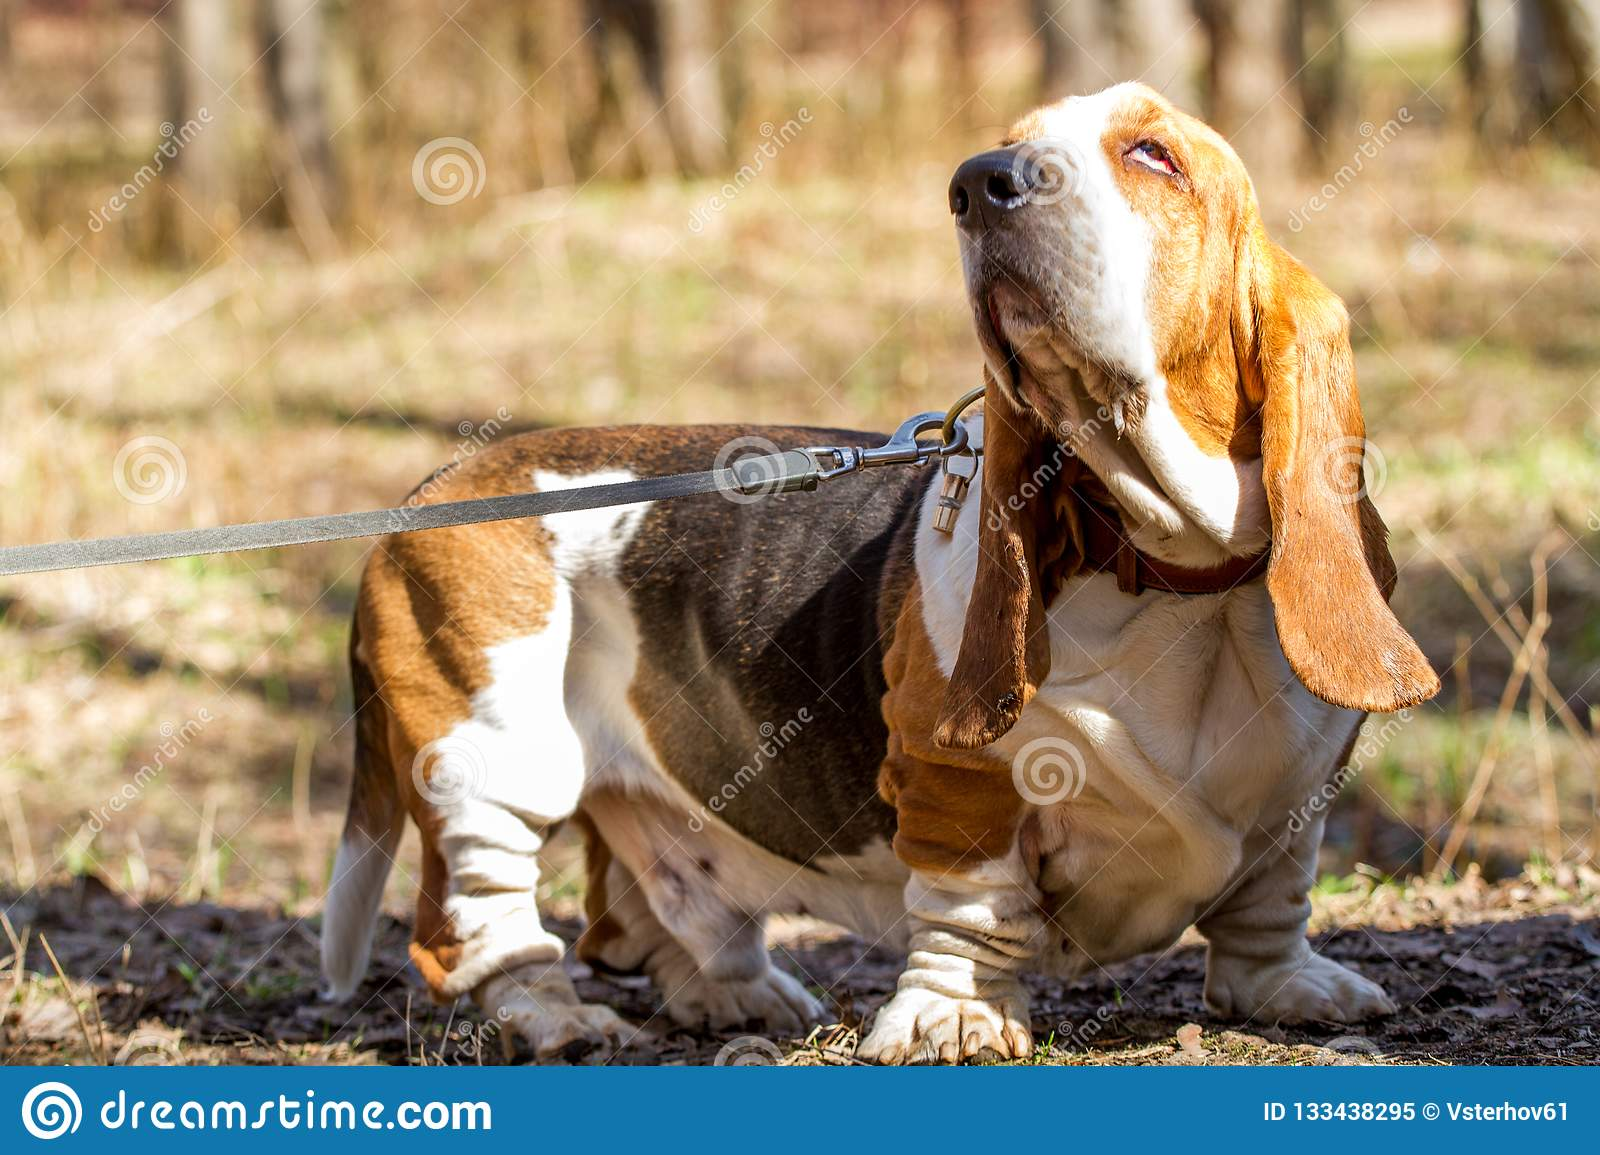 Basset Hound A Breed Of Beagle Dogs Bred In England Stock Image Image Of Elite Pets 133438295